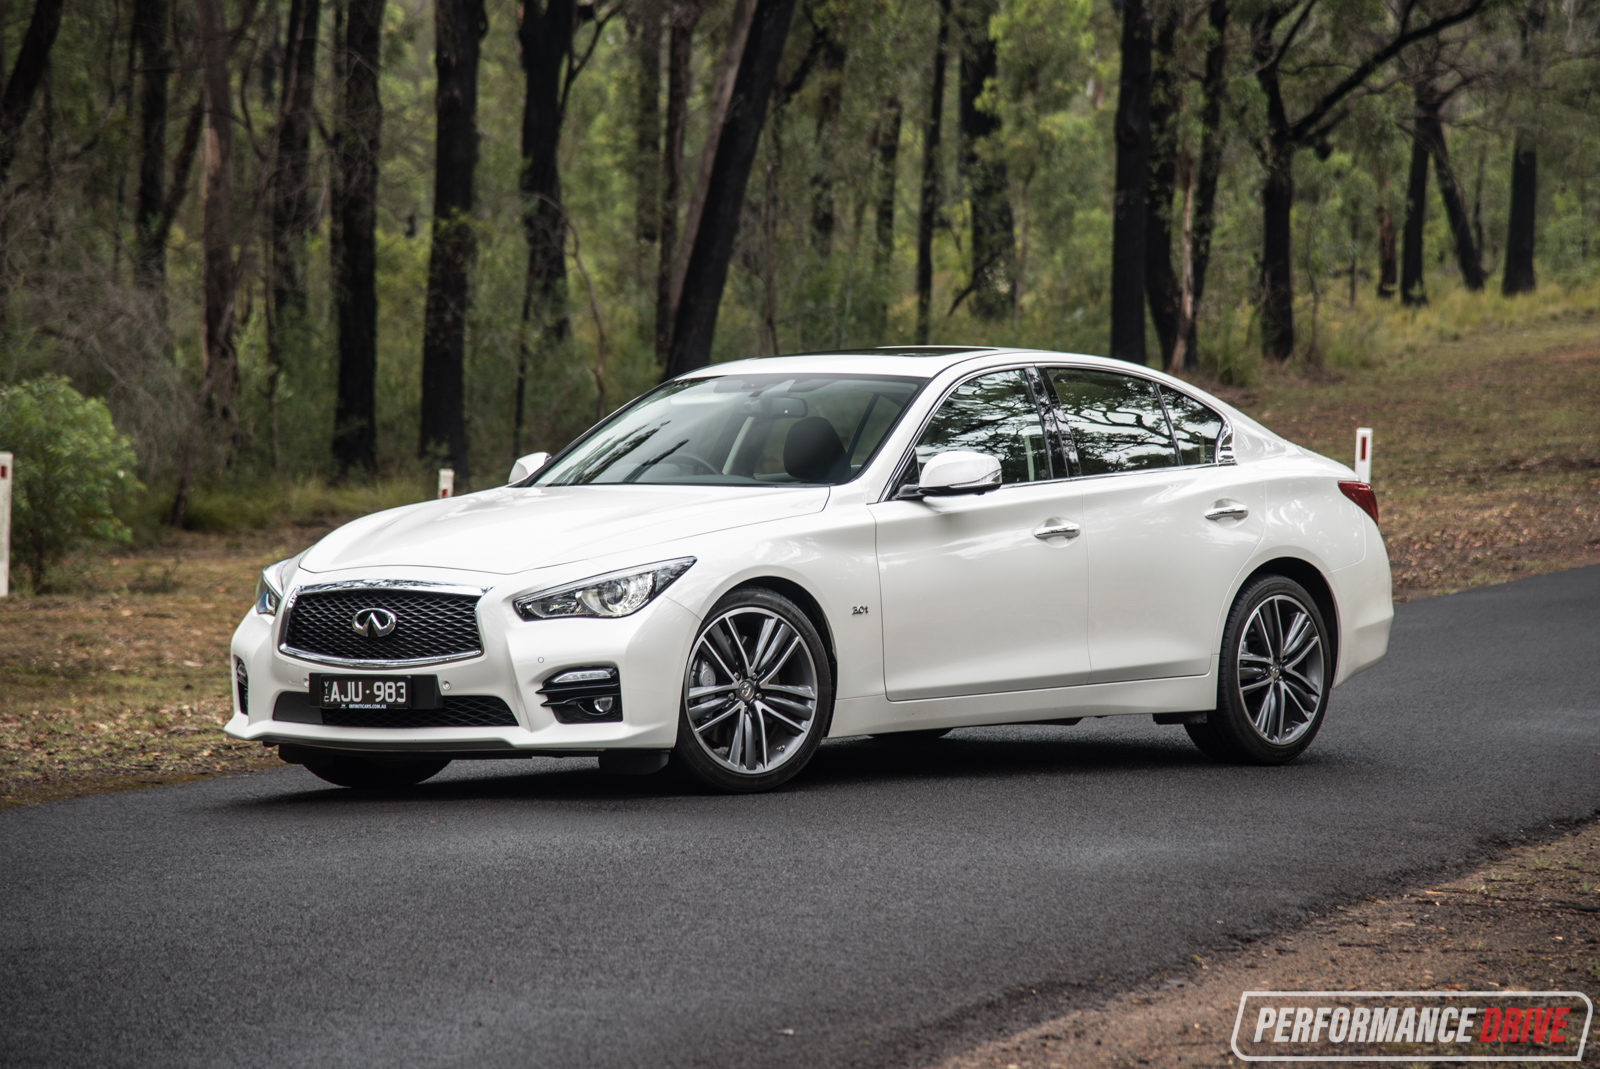 2017 infiniti q50 silver sport review video performancedrive. Black Bedroom Furniture Sets. Home Design Ideas